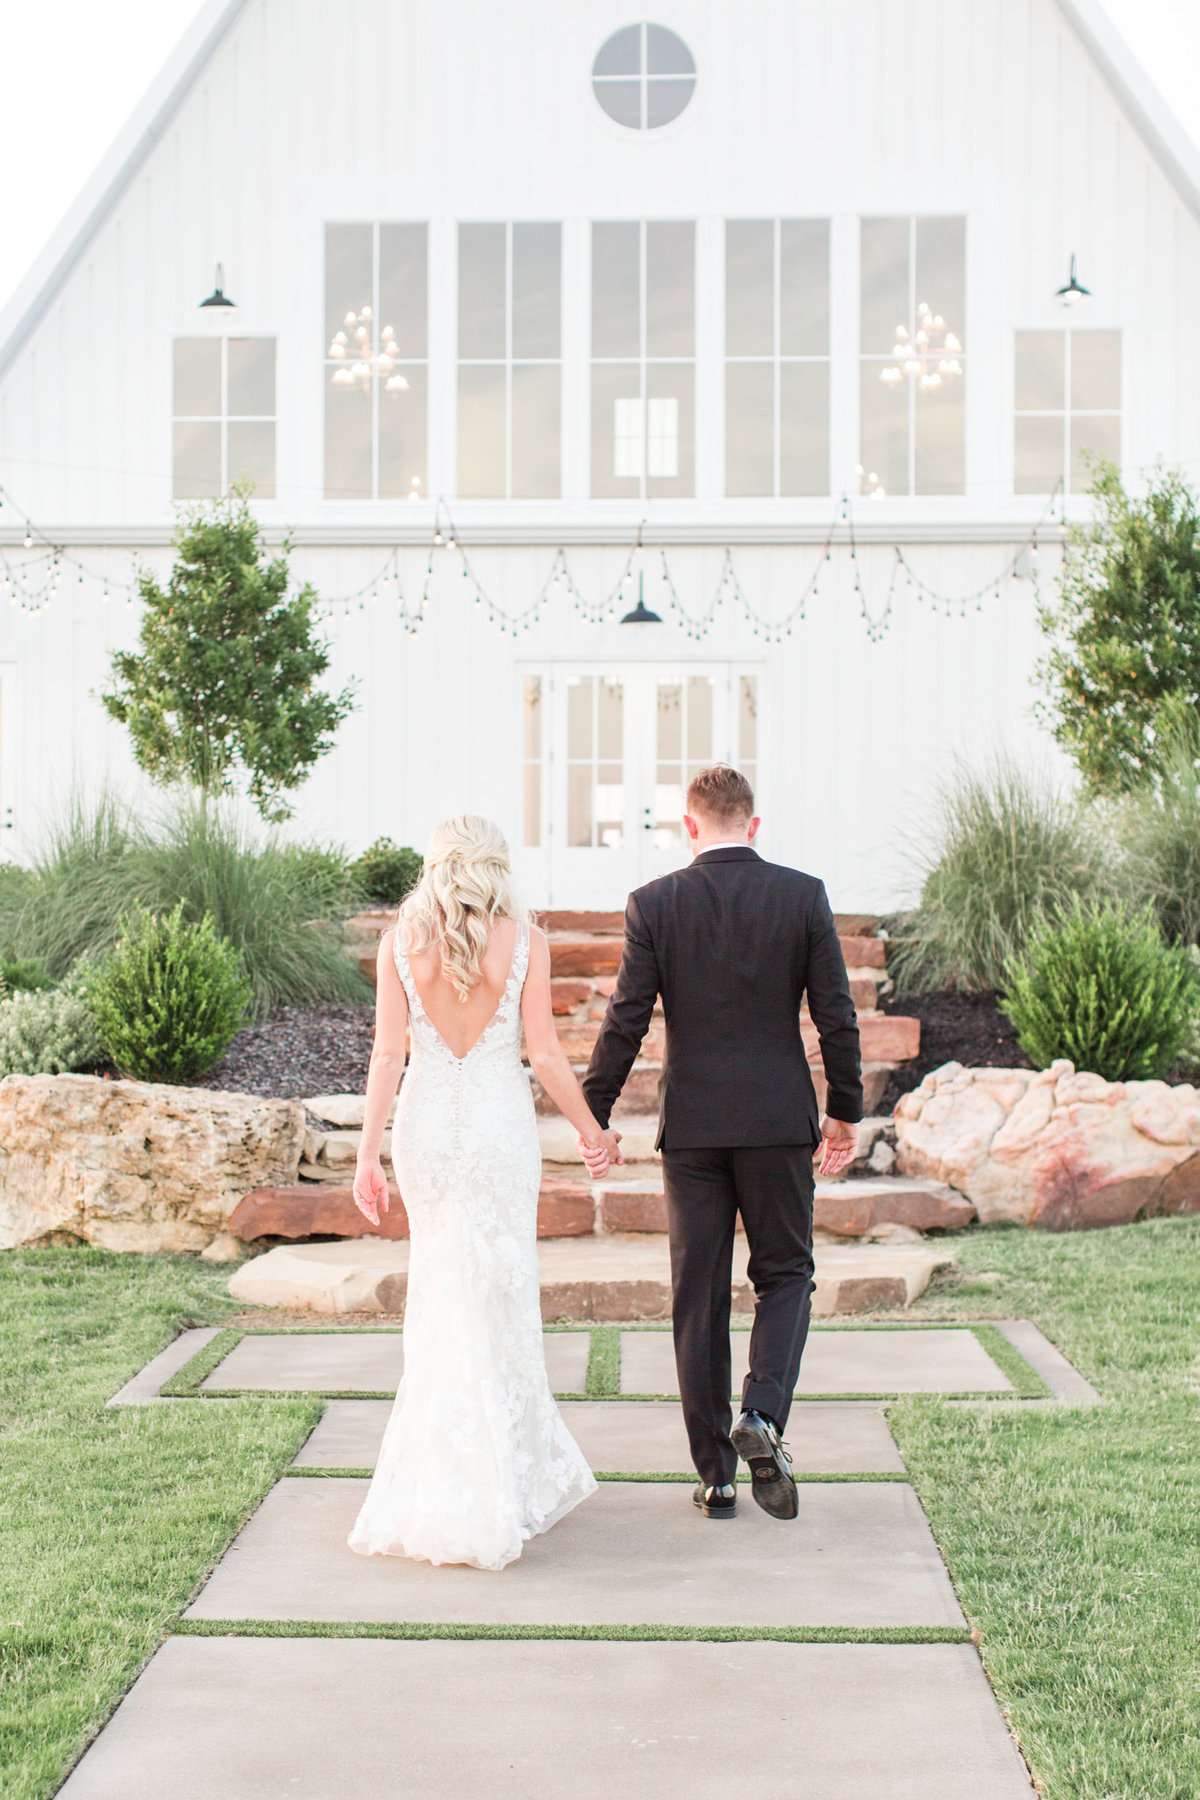 Dallas Wedding Photographers | Sami Kathryn Photography | Portfolio: Katie & Nick Wedding at The Nest at Ruth Farms